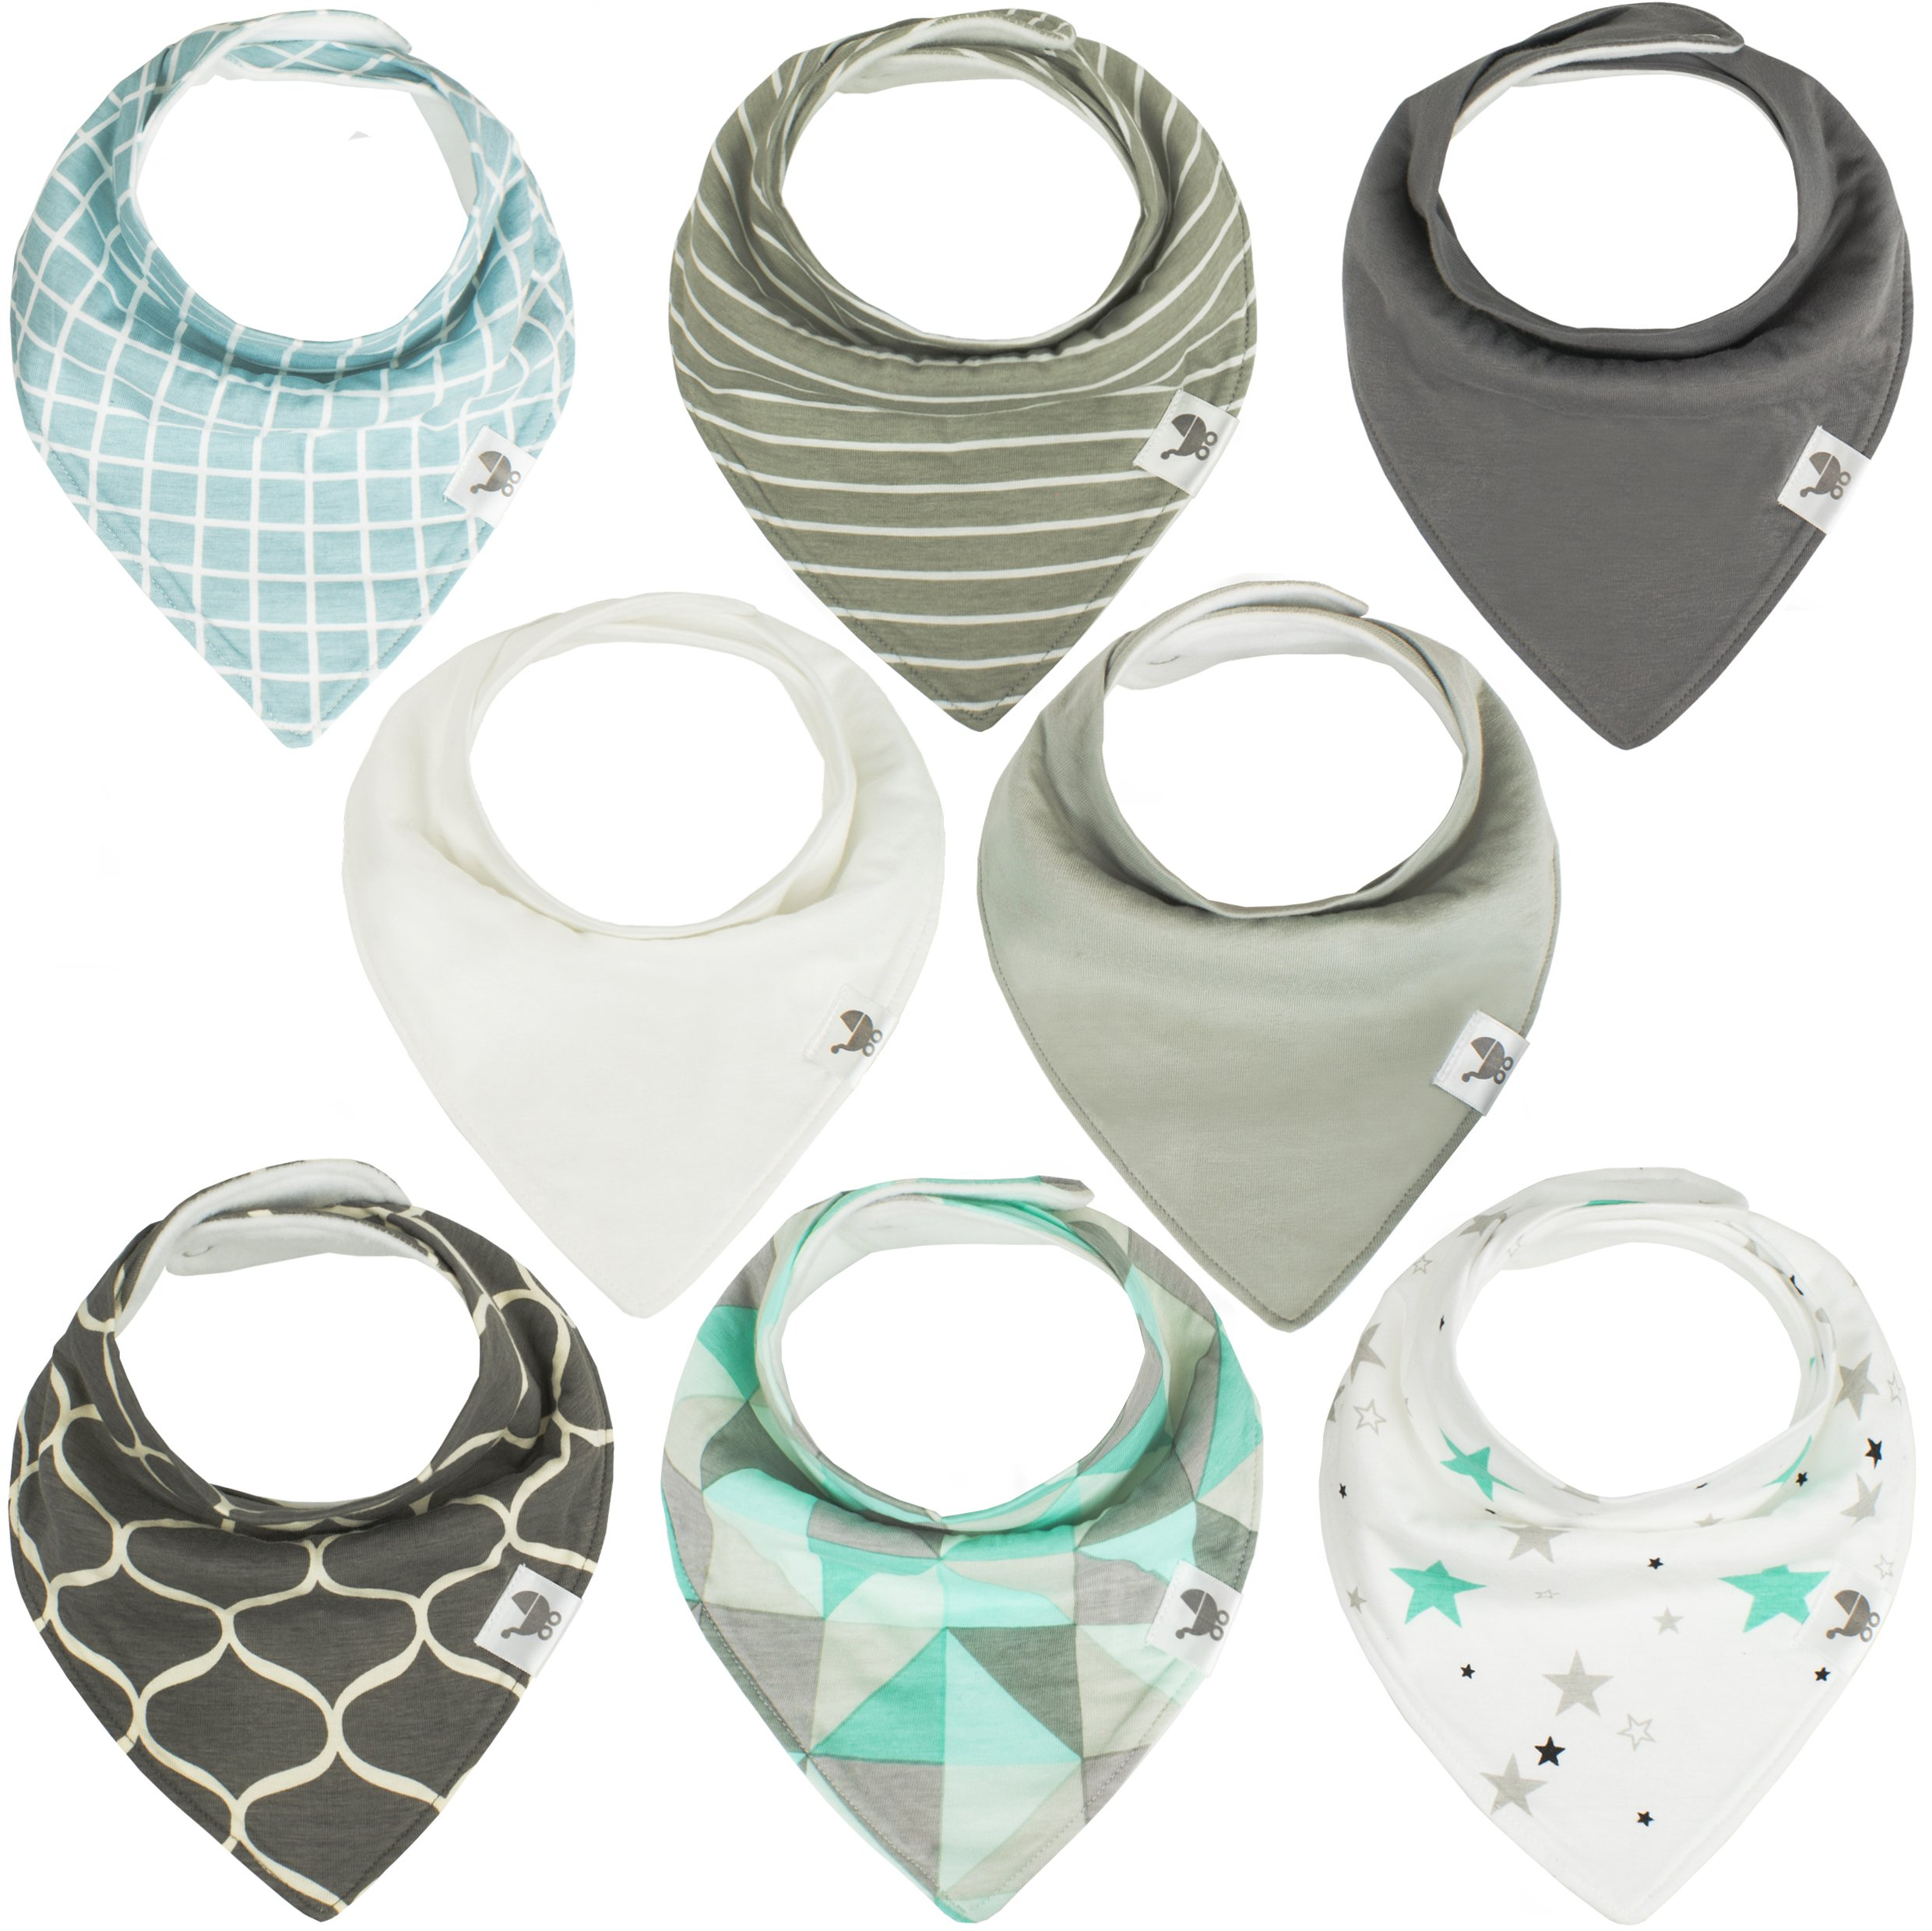 Bandana Baby Drool Bibs - 8-pack Bib Gift Set For Drooling and Teething Babies - Extra Soft & Absorbent 100% Organic Cotton - Unisex Boys & Girls - Adjustable - Hypoallergenic Burp Cloth - Mint & Gray